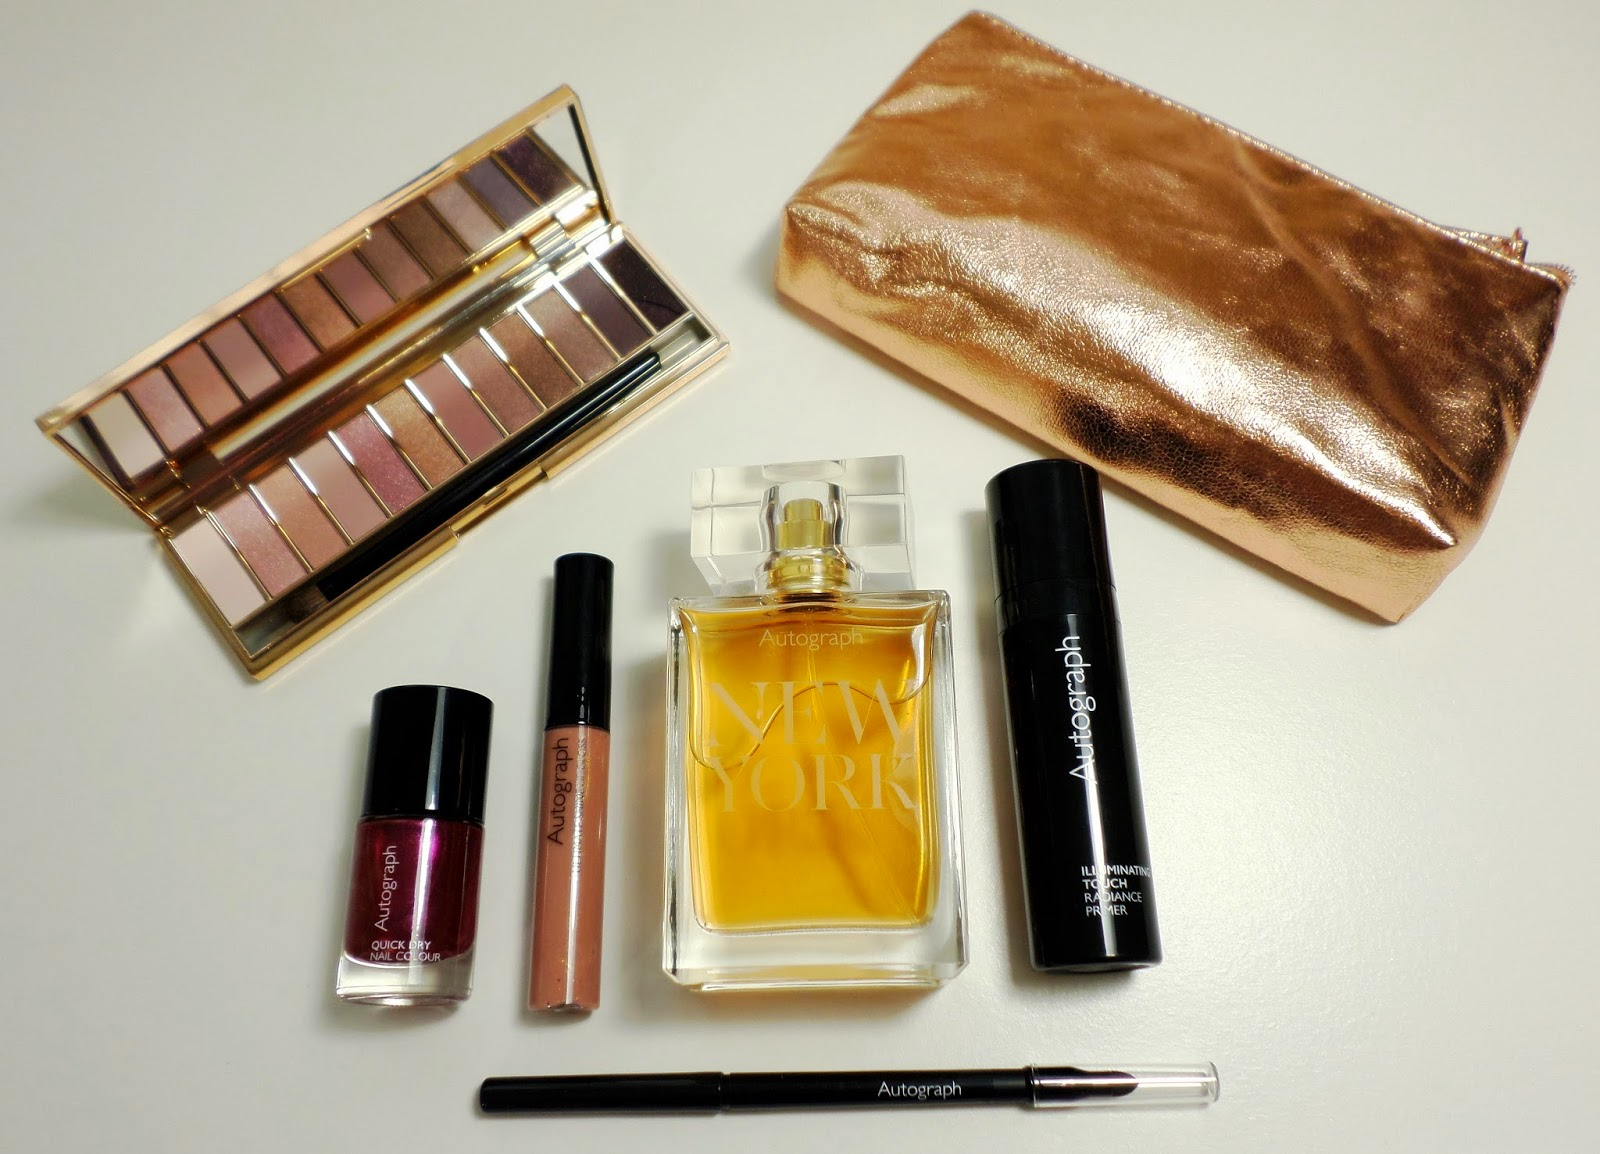 Marks & Spencer Autograph Bumper Makeup & Beauty Gift Set January Sales 2015